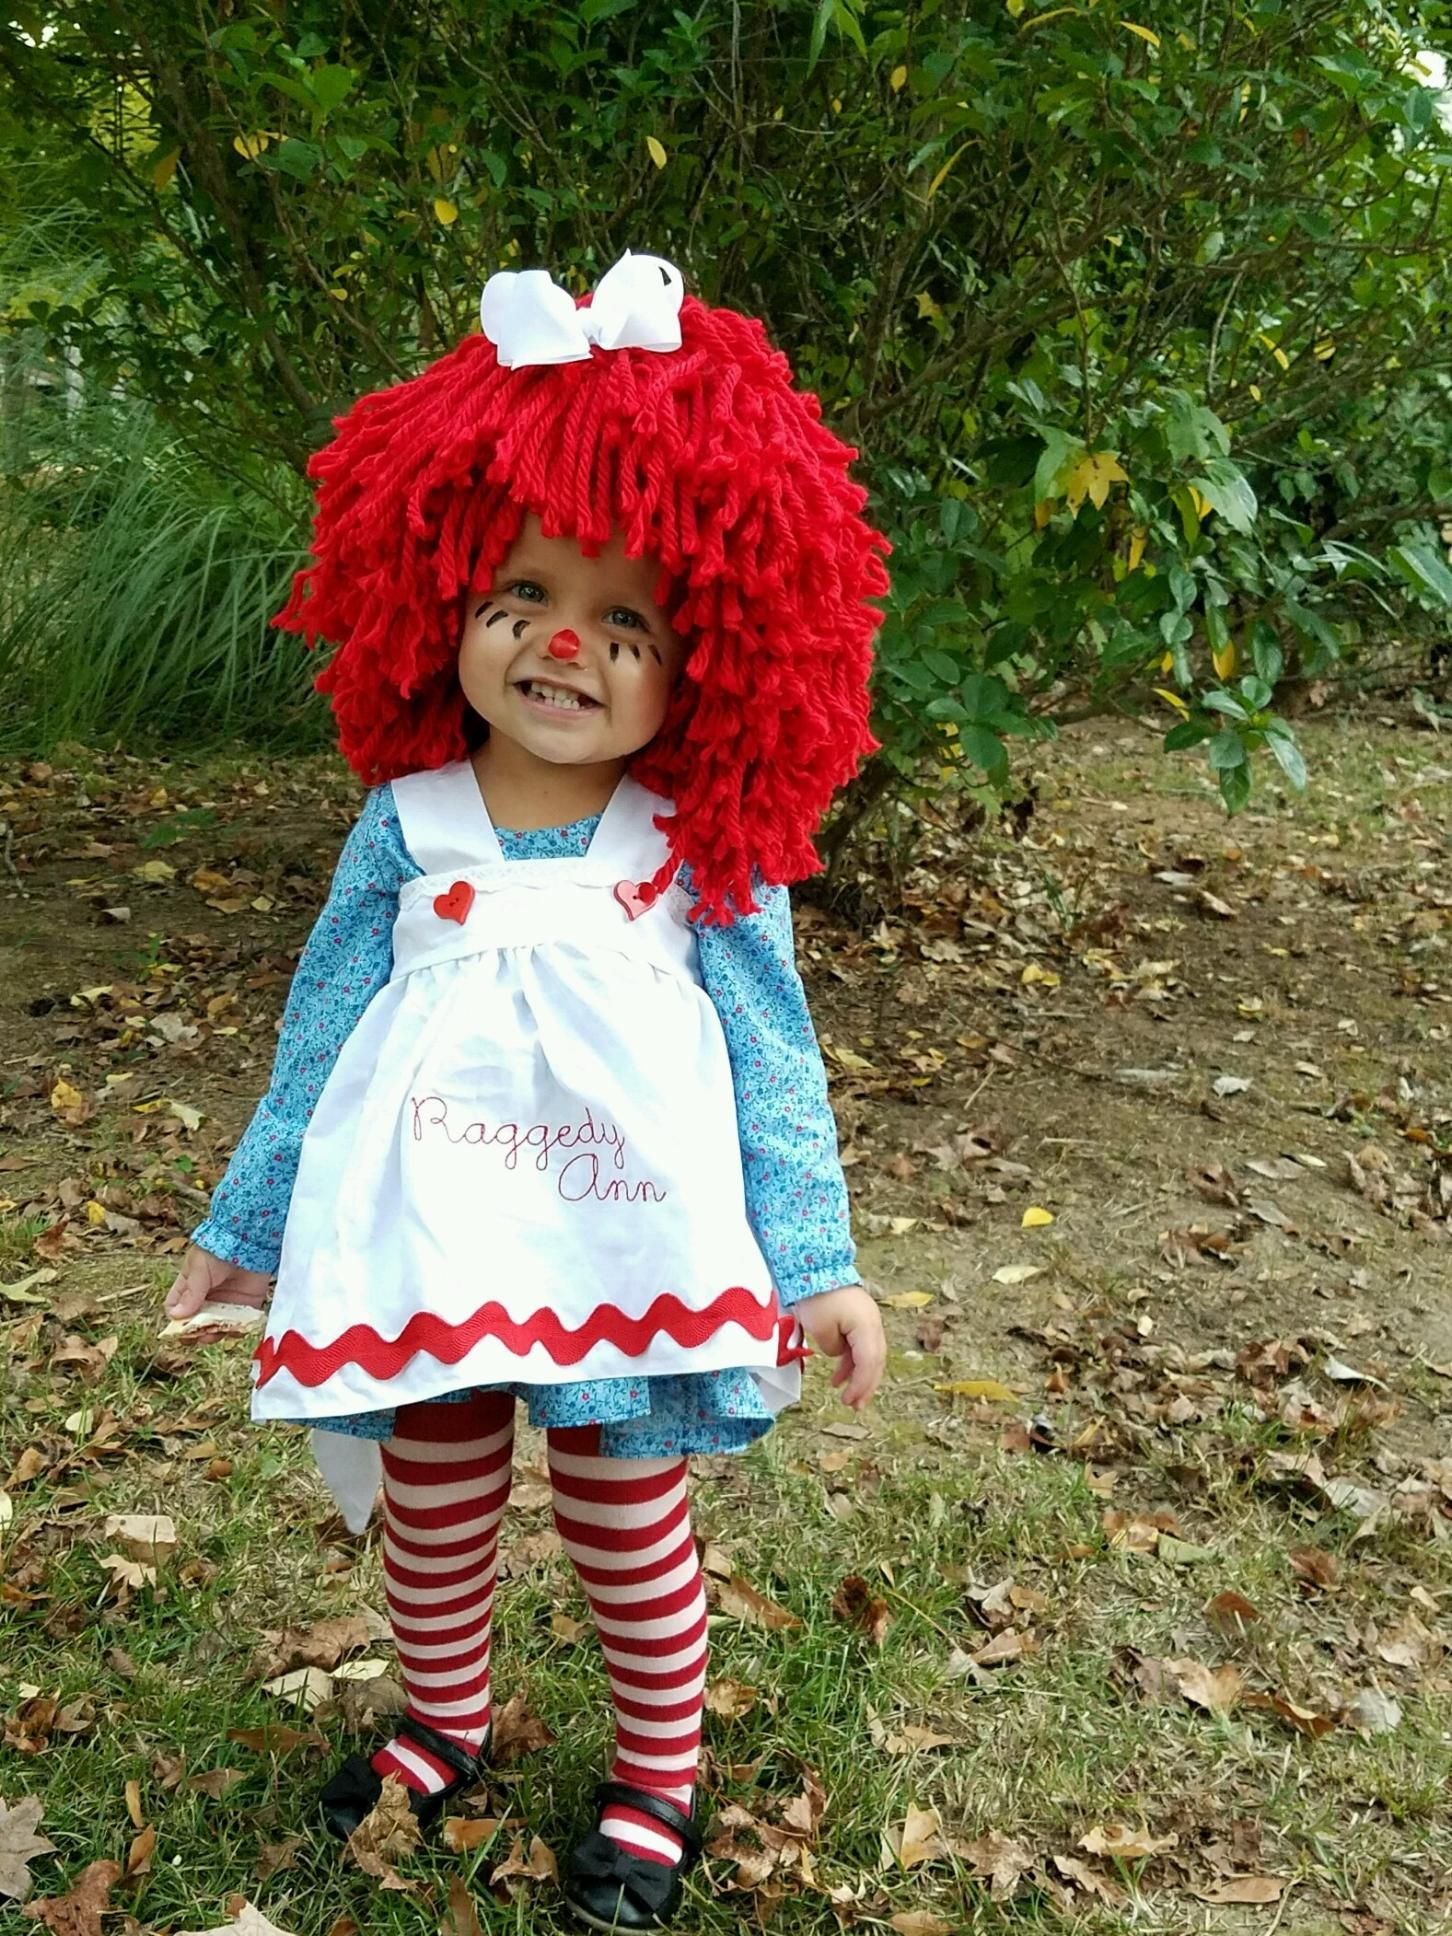 Unique Halloween Costume Ideas For Toddler Girl.Baby Girl Halloween Costume Idea Toddler Raggedy Ann Family